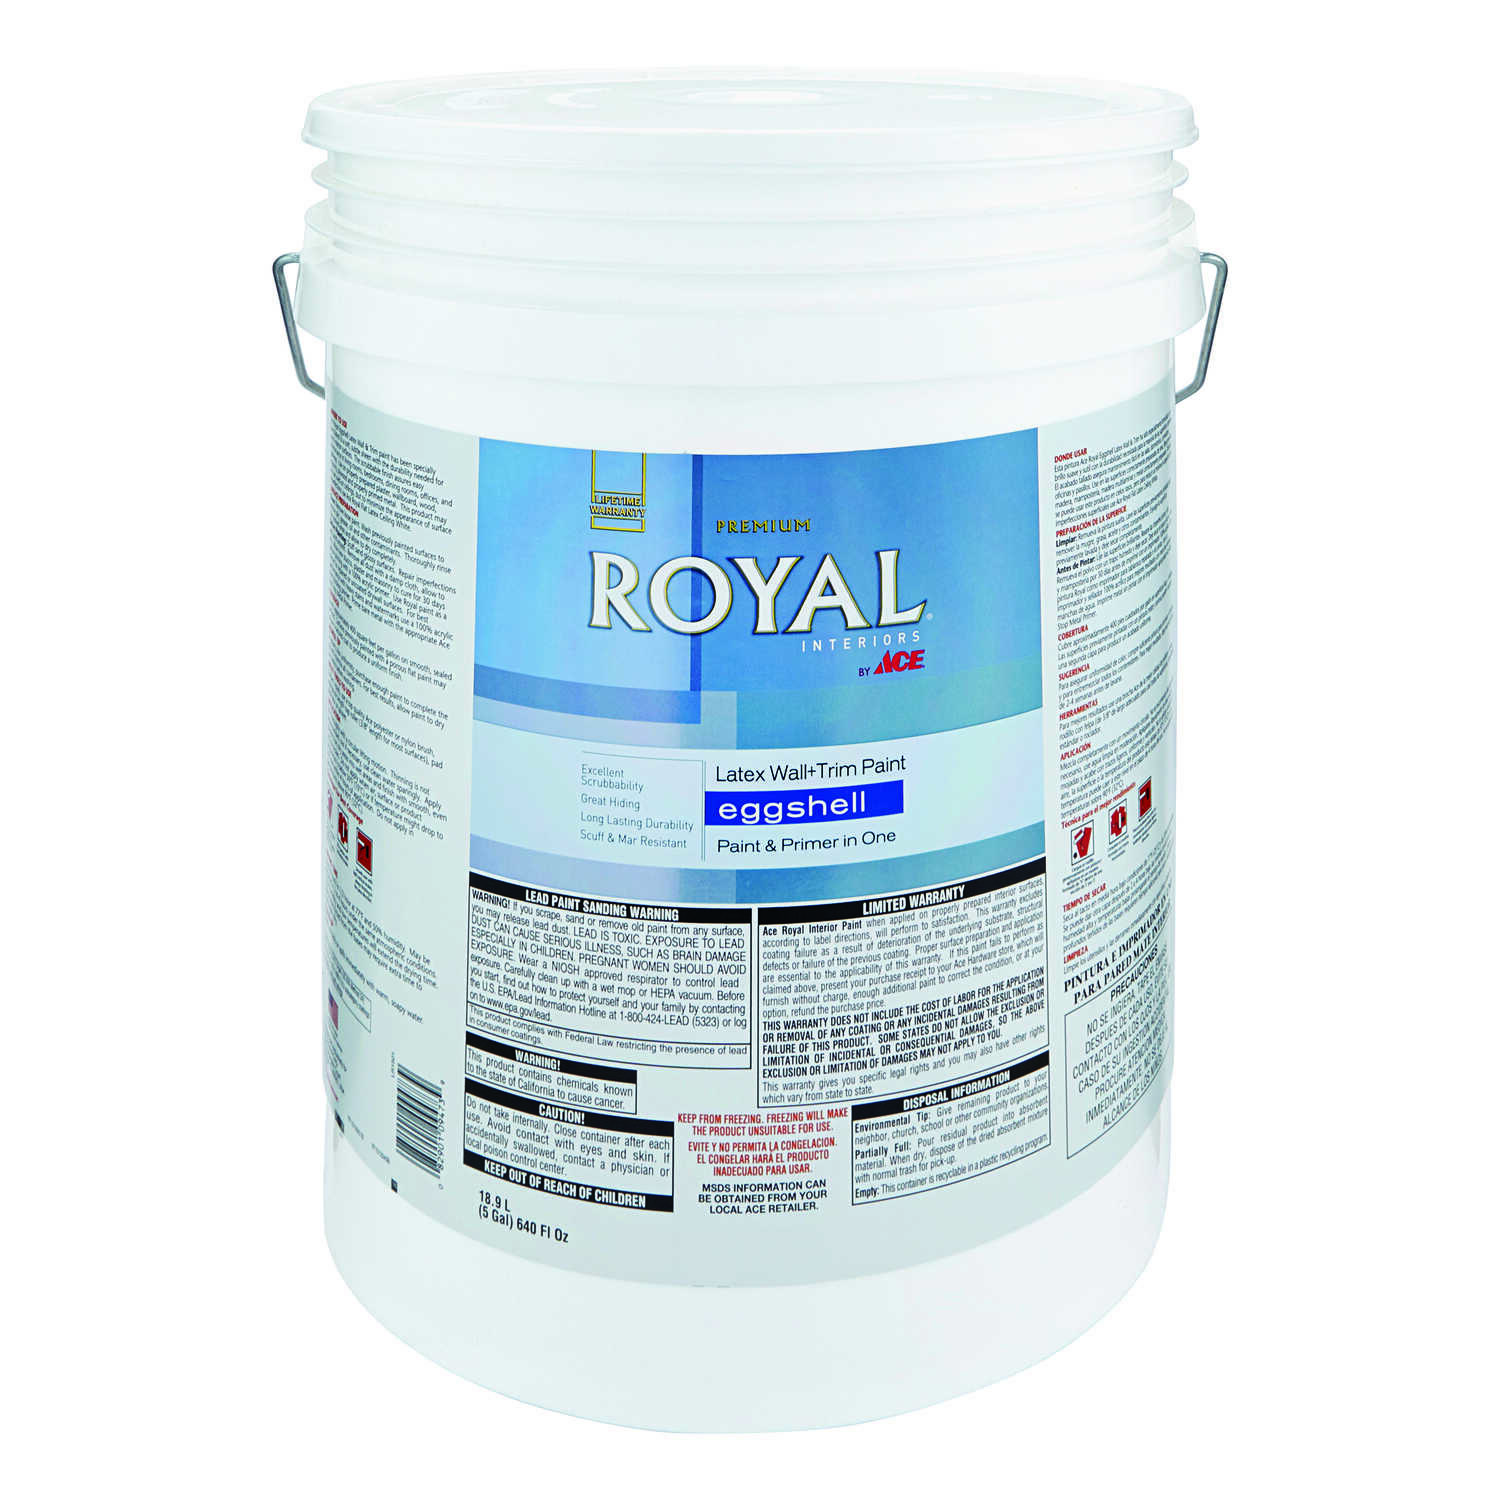 Ace  Royal  Eggshell  Neutral Base  Vinyl Acetate/Ethylene  Interior Latex Wall+Trim Paint  5 gal.